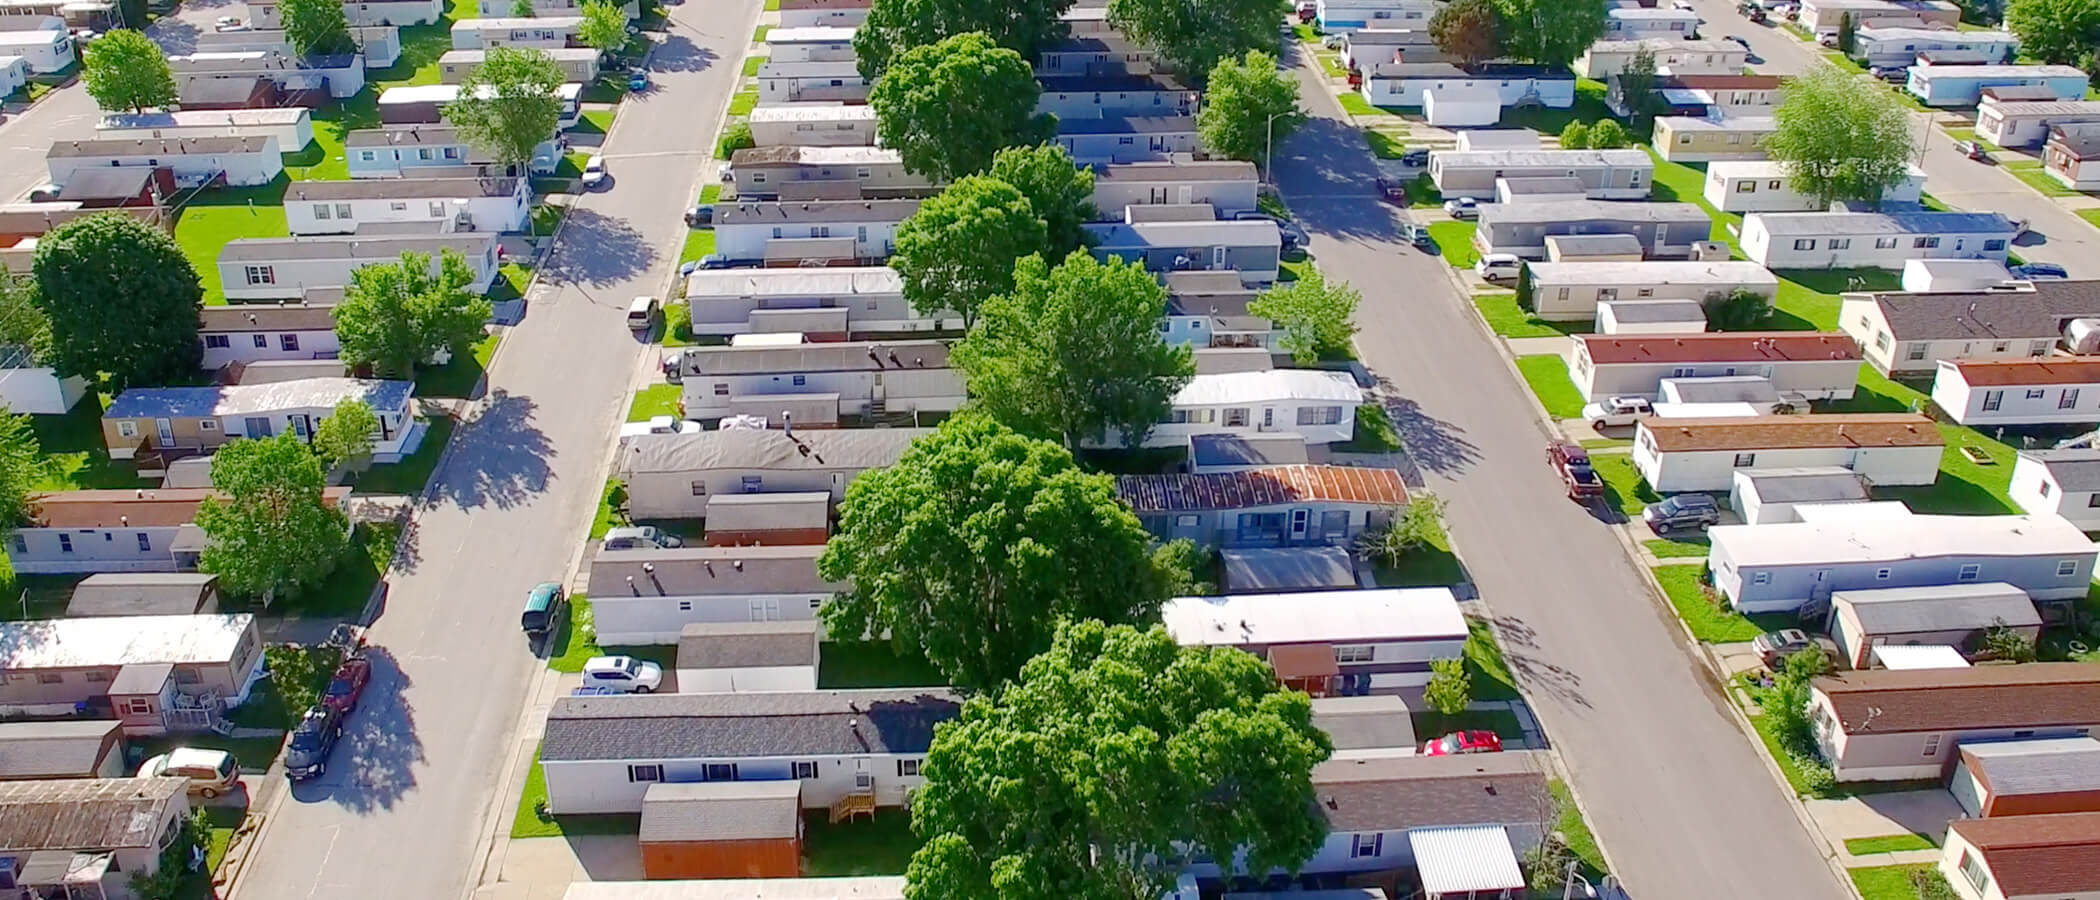 Malta Mobile Home Park slideshow image 5